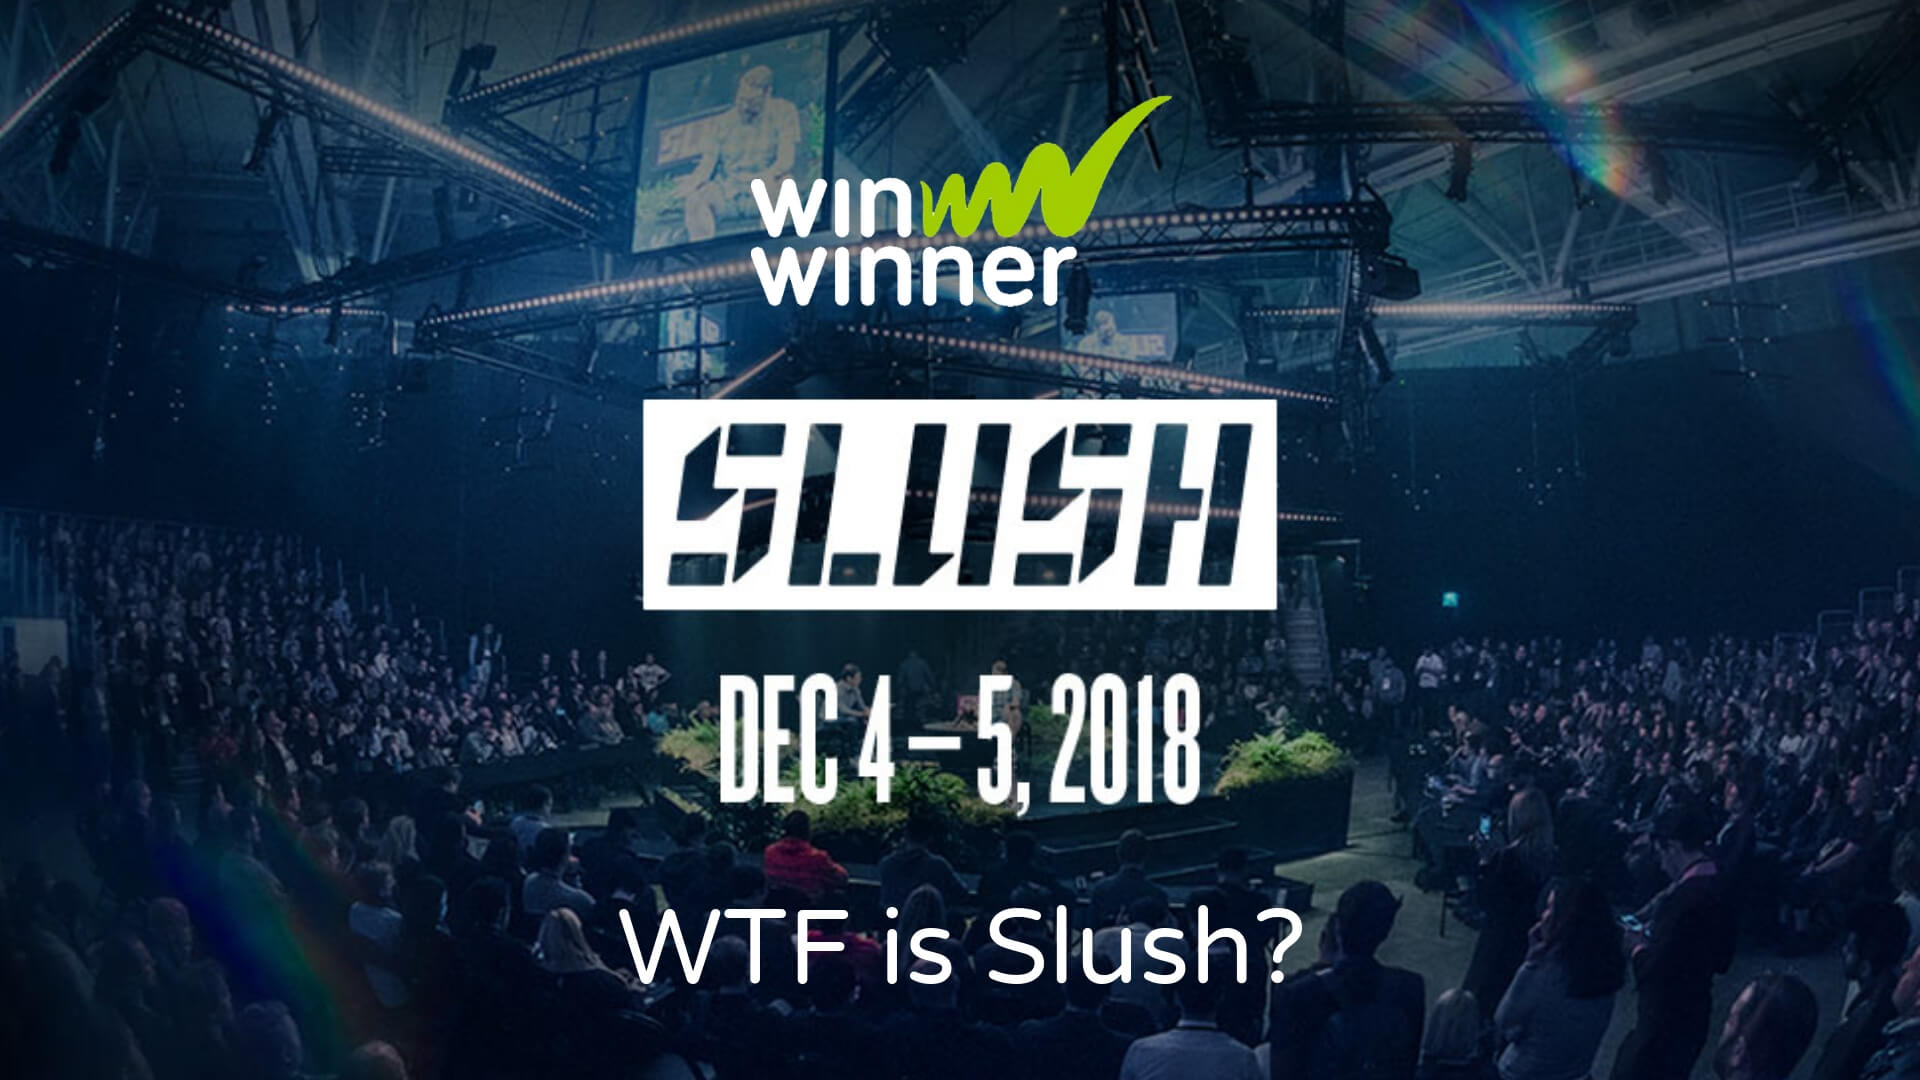 WinWinner @ Slush: Episode 1 - Wtf is Slush?!